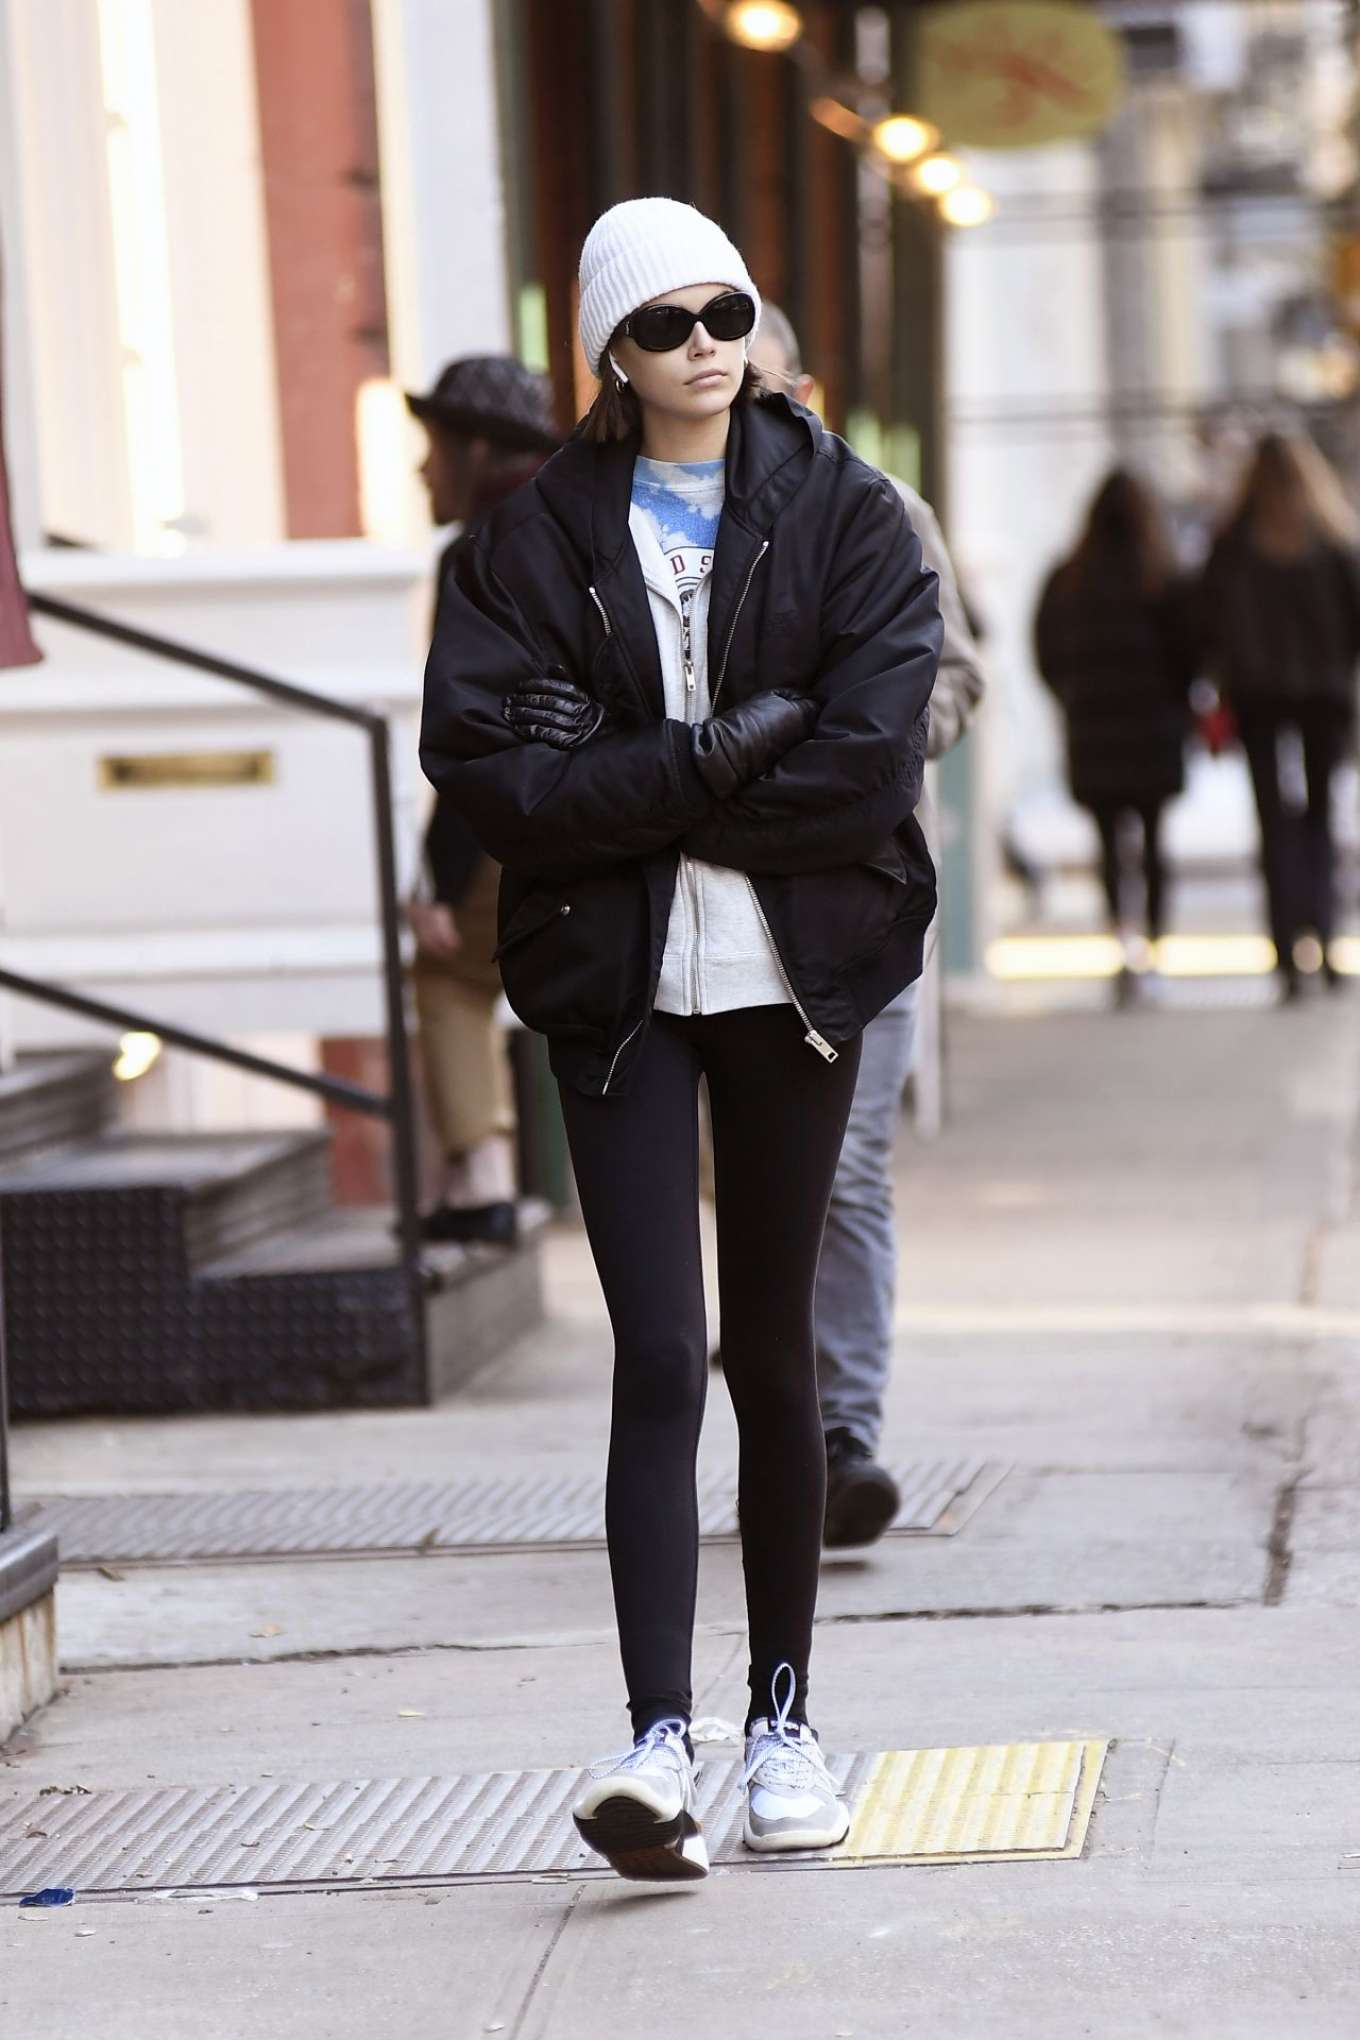 Kaia Gerber donning striped grey Adidas lace-up trainers